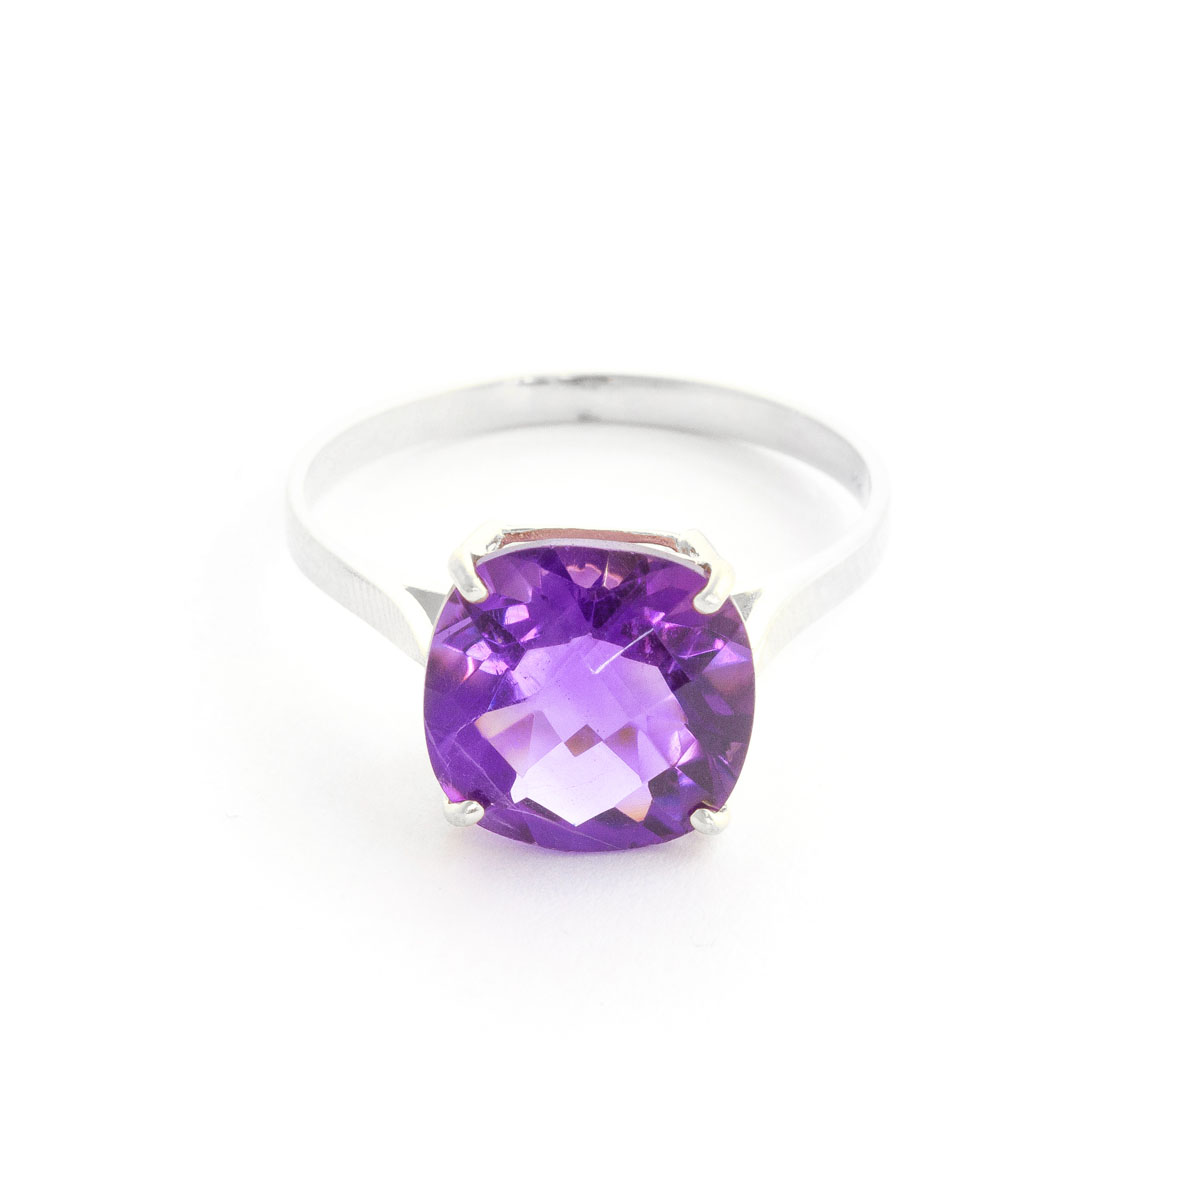 Amethyst Rococo Ring 3.6 ct in 18ct White Gold